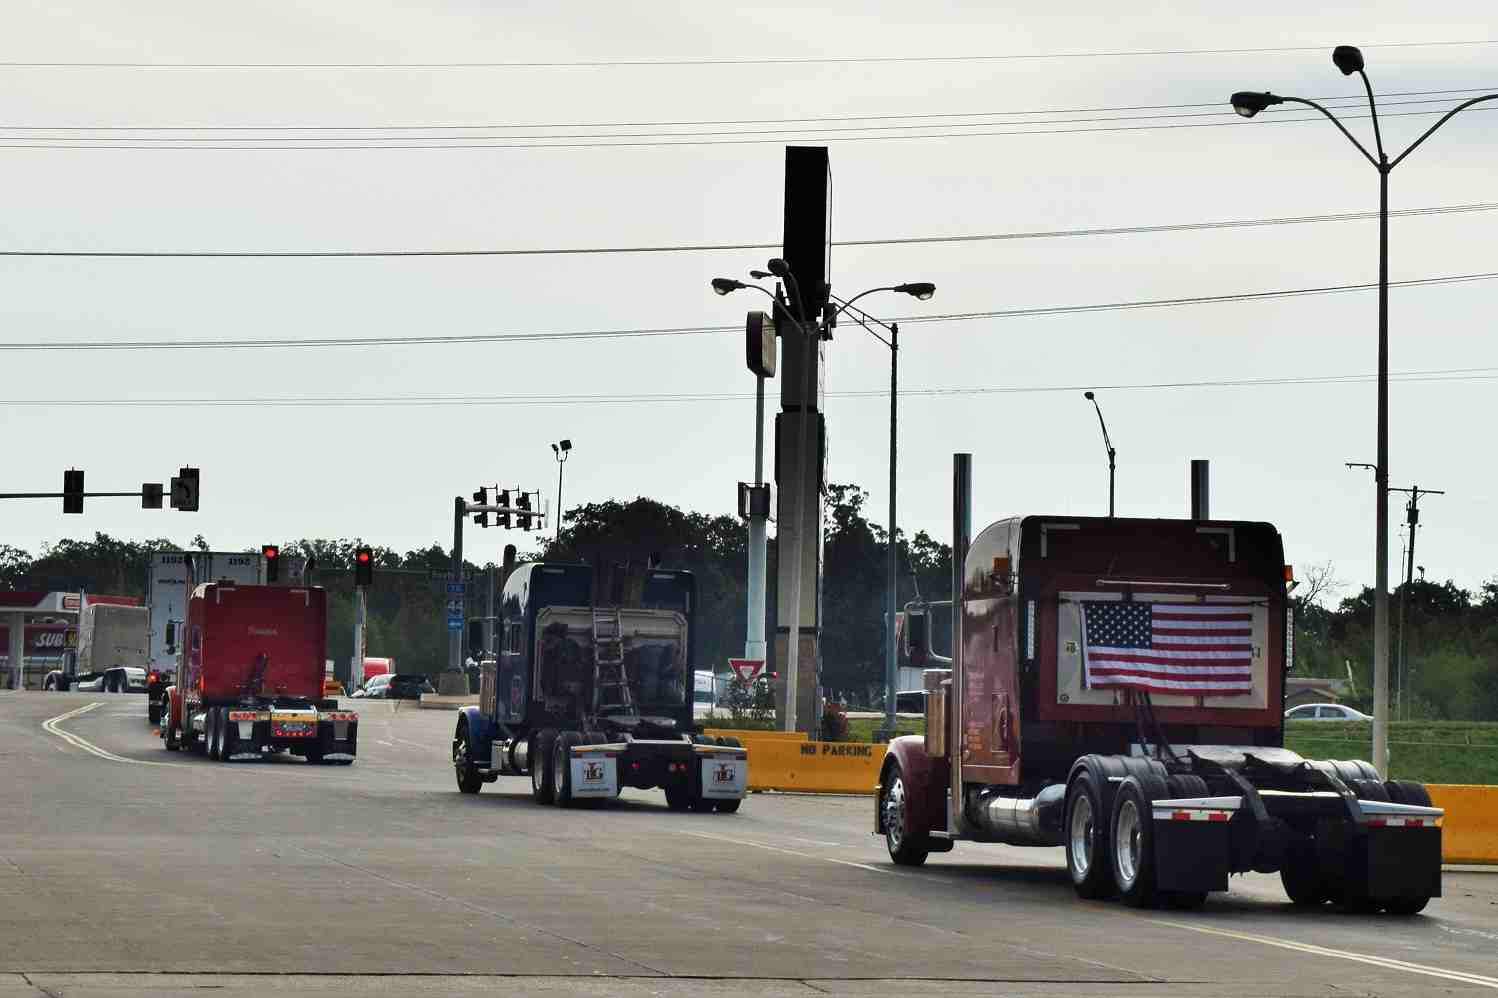 Ohio-based Novak's 2005 379 (right) brought up the rear of the convoy as it rolled out of Joplin.